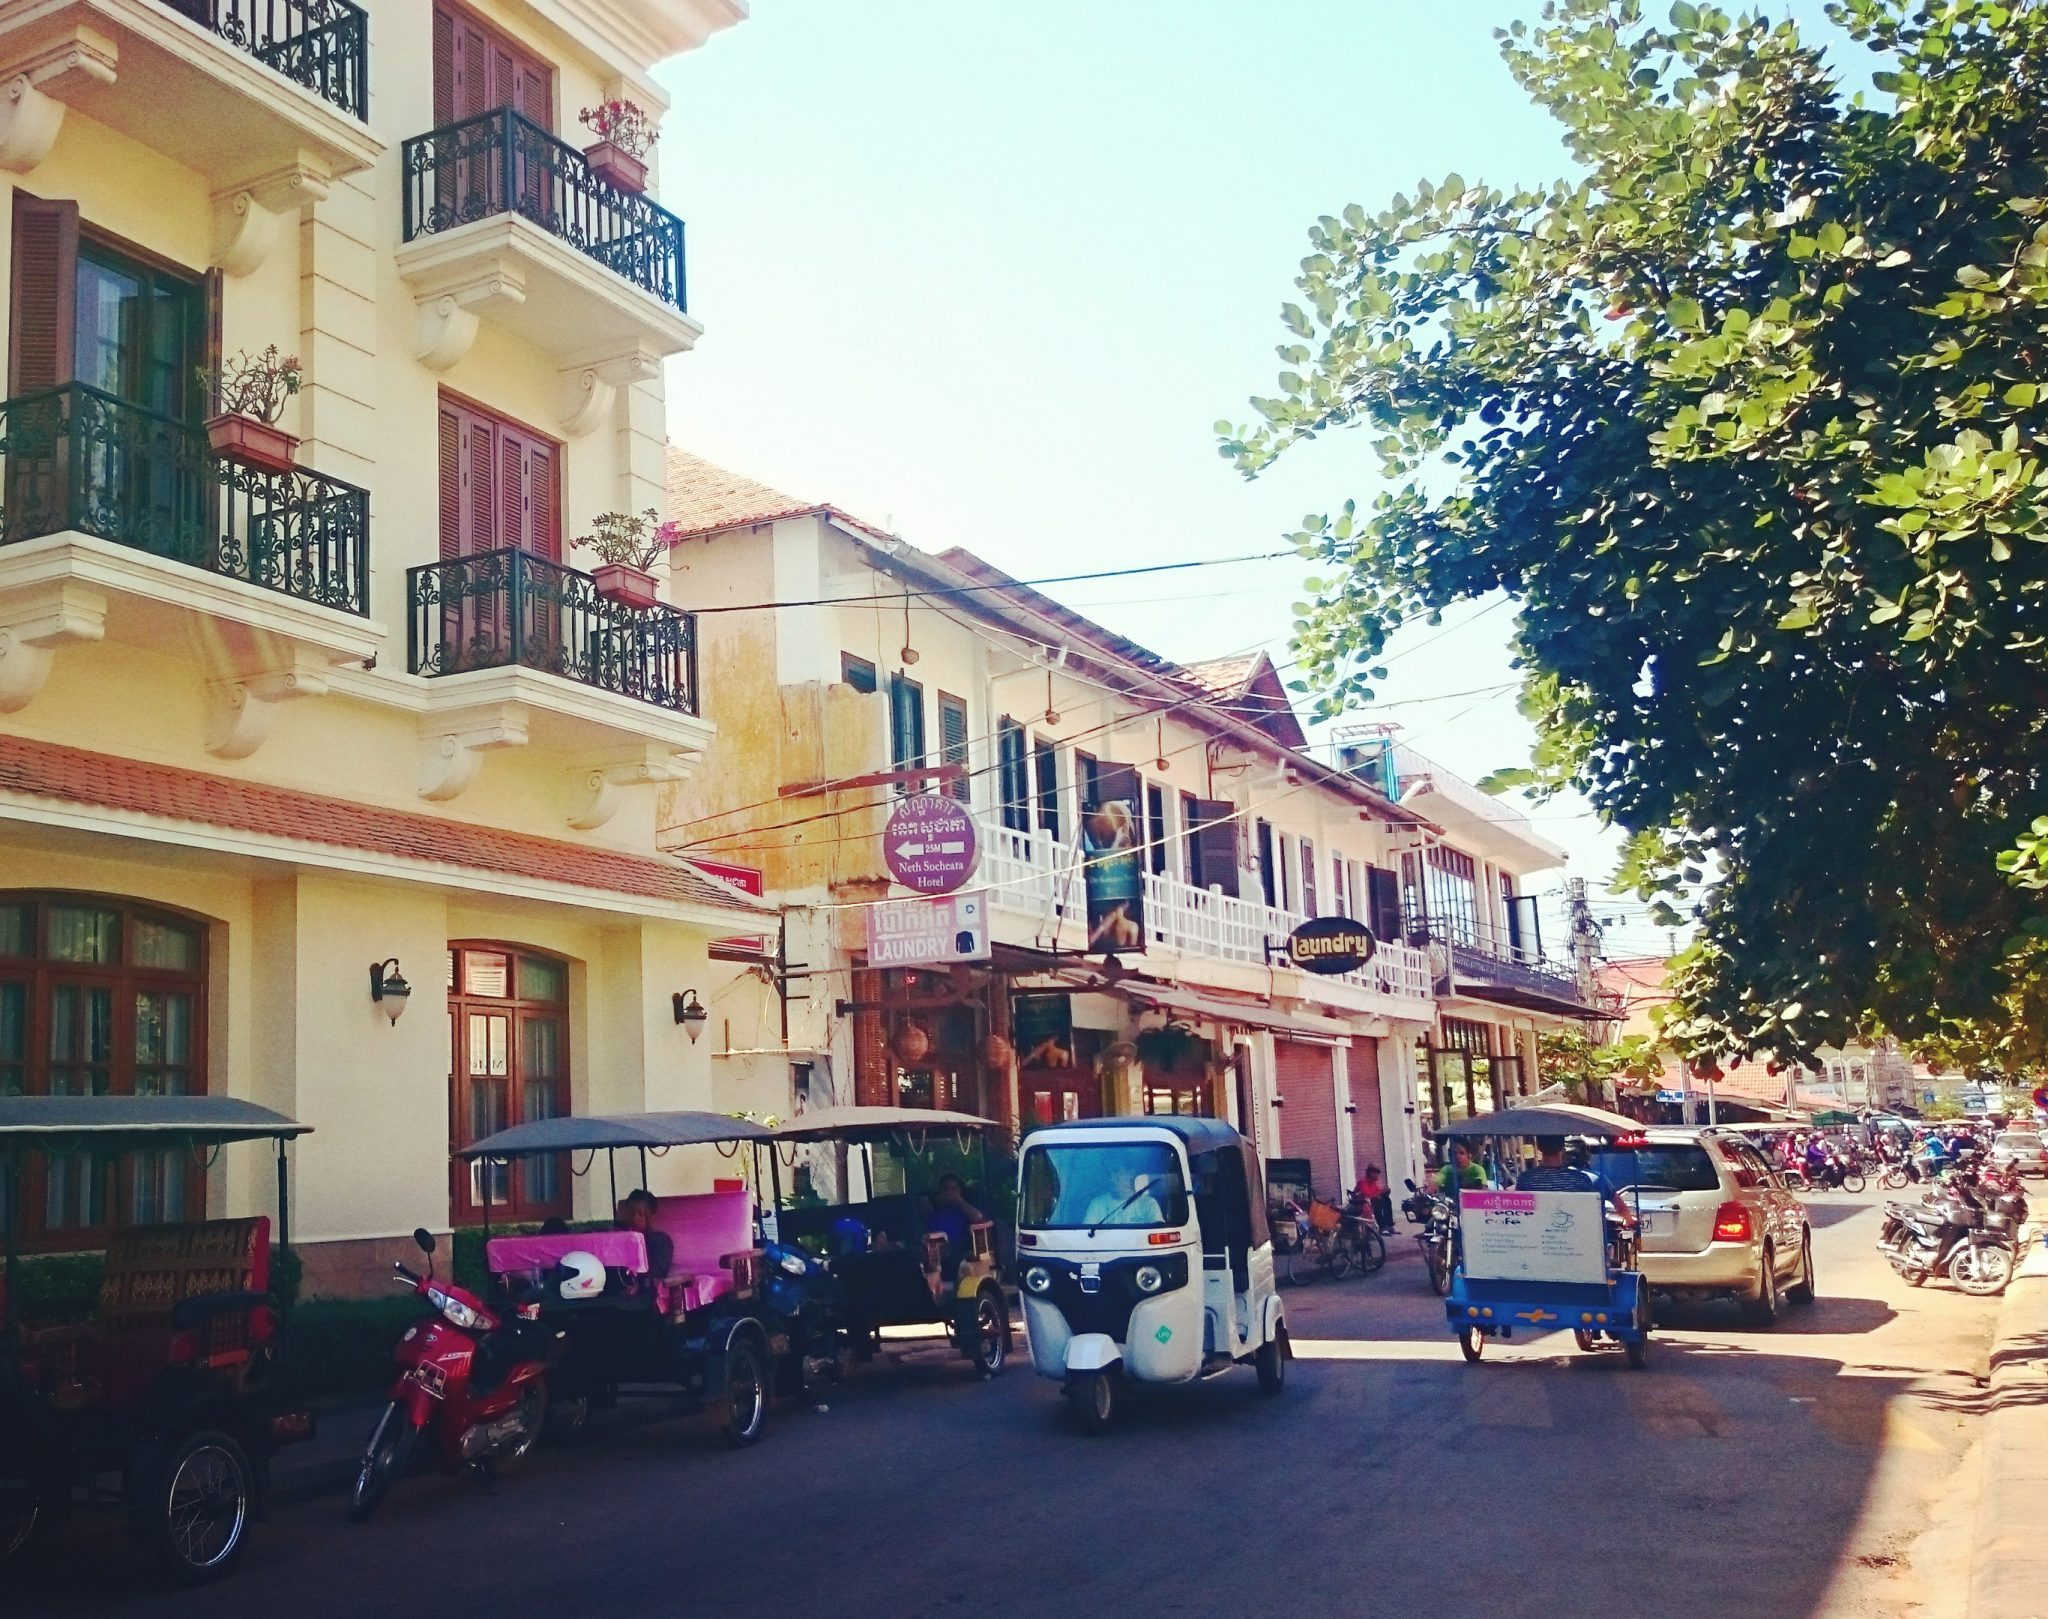 5 things to do in Siem Reap instead of visiting the temples